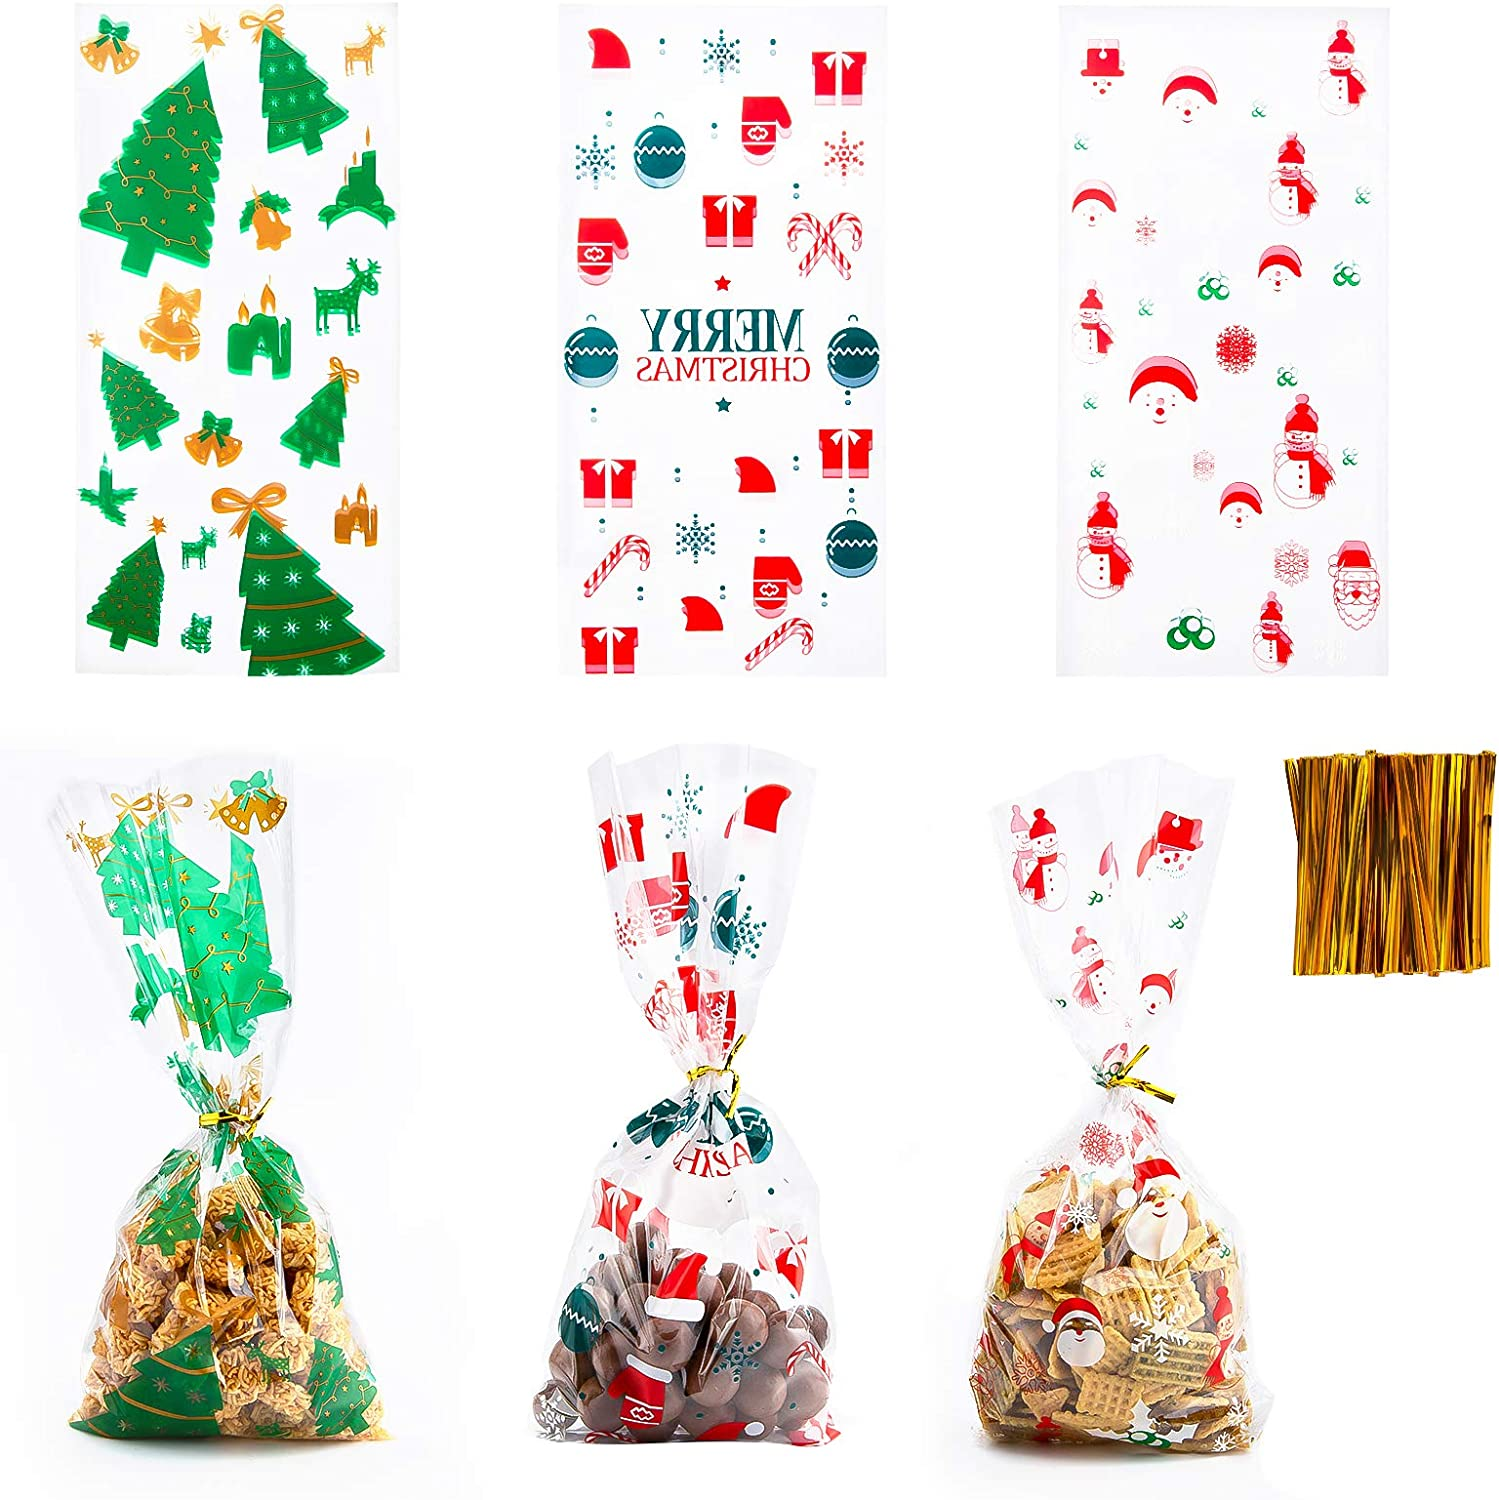 AIEX 150 PCS 10.6 x 4.9 Inch Clear Christmas Cellophane Snack Bags, Xmas Cookie Candy Pet Gift Bags with 150Pcs Twist Ties for Bakery Biscuit Snacks, Christmas Party Favors, Homemade Craft